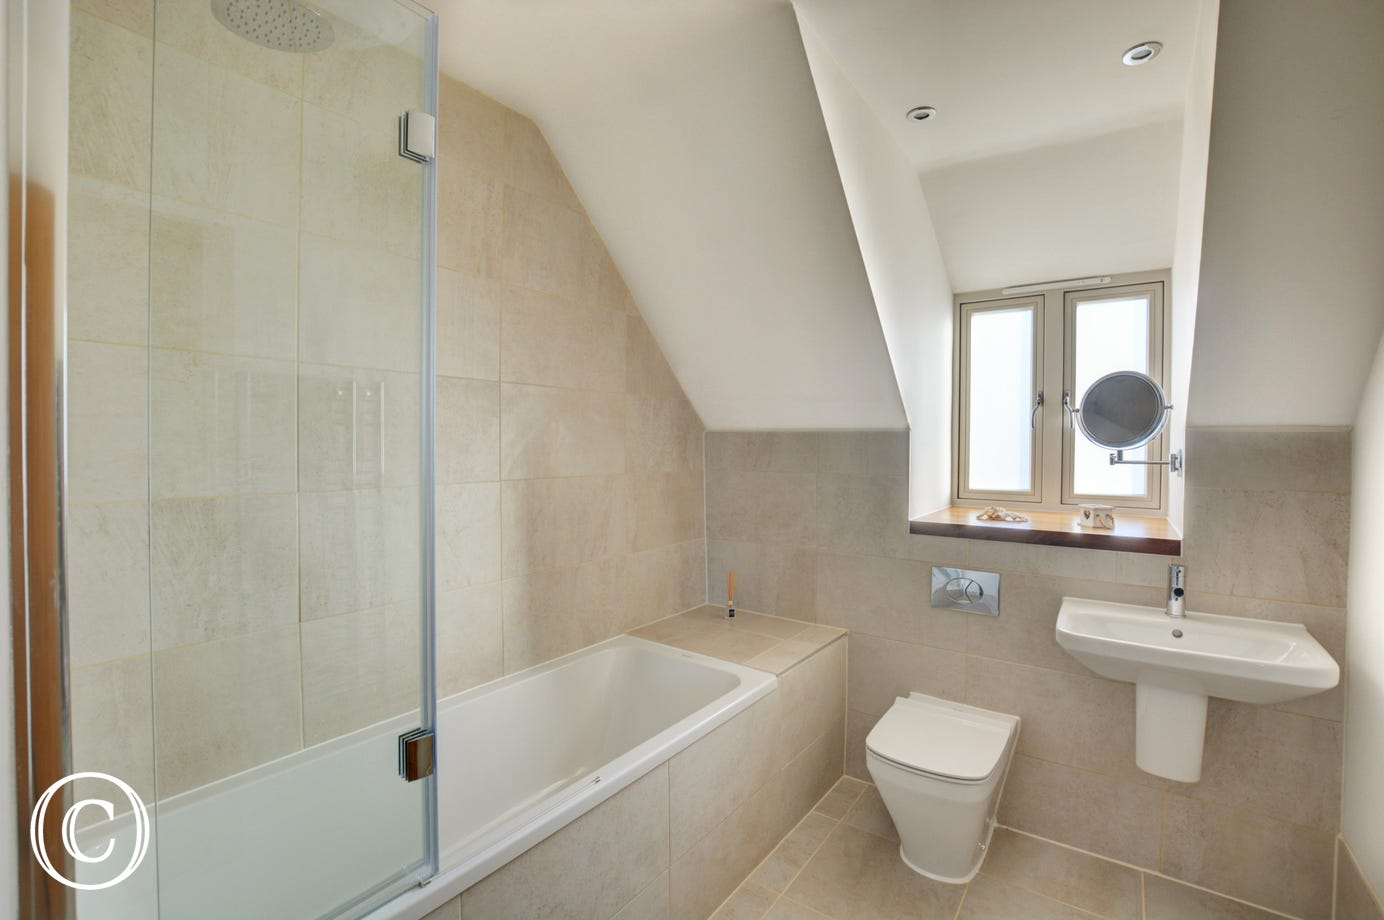 Bathroom with over the bath shower, washbasin and w.c